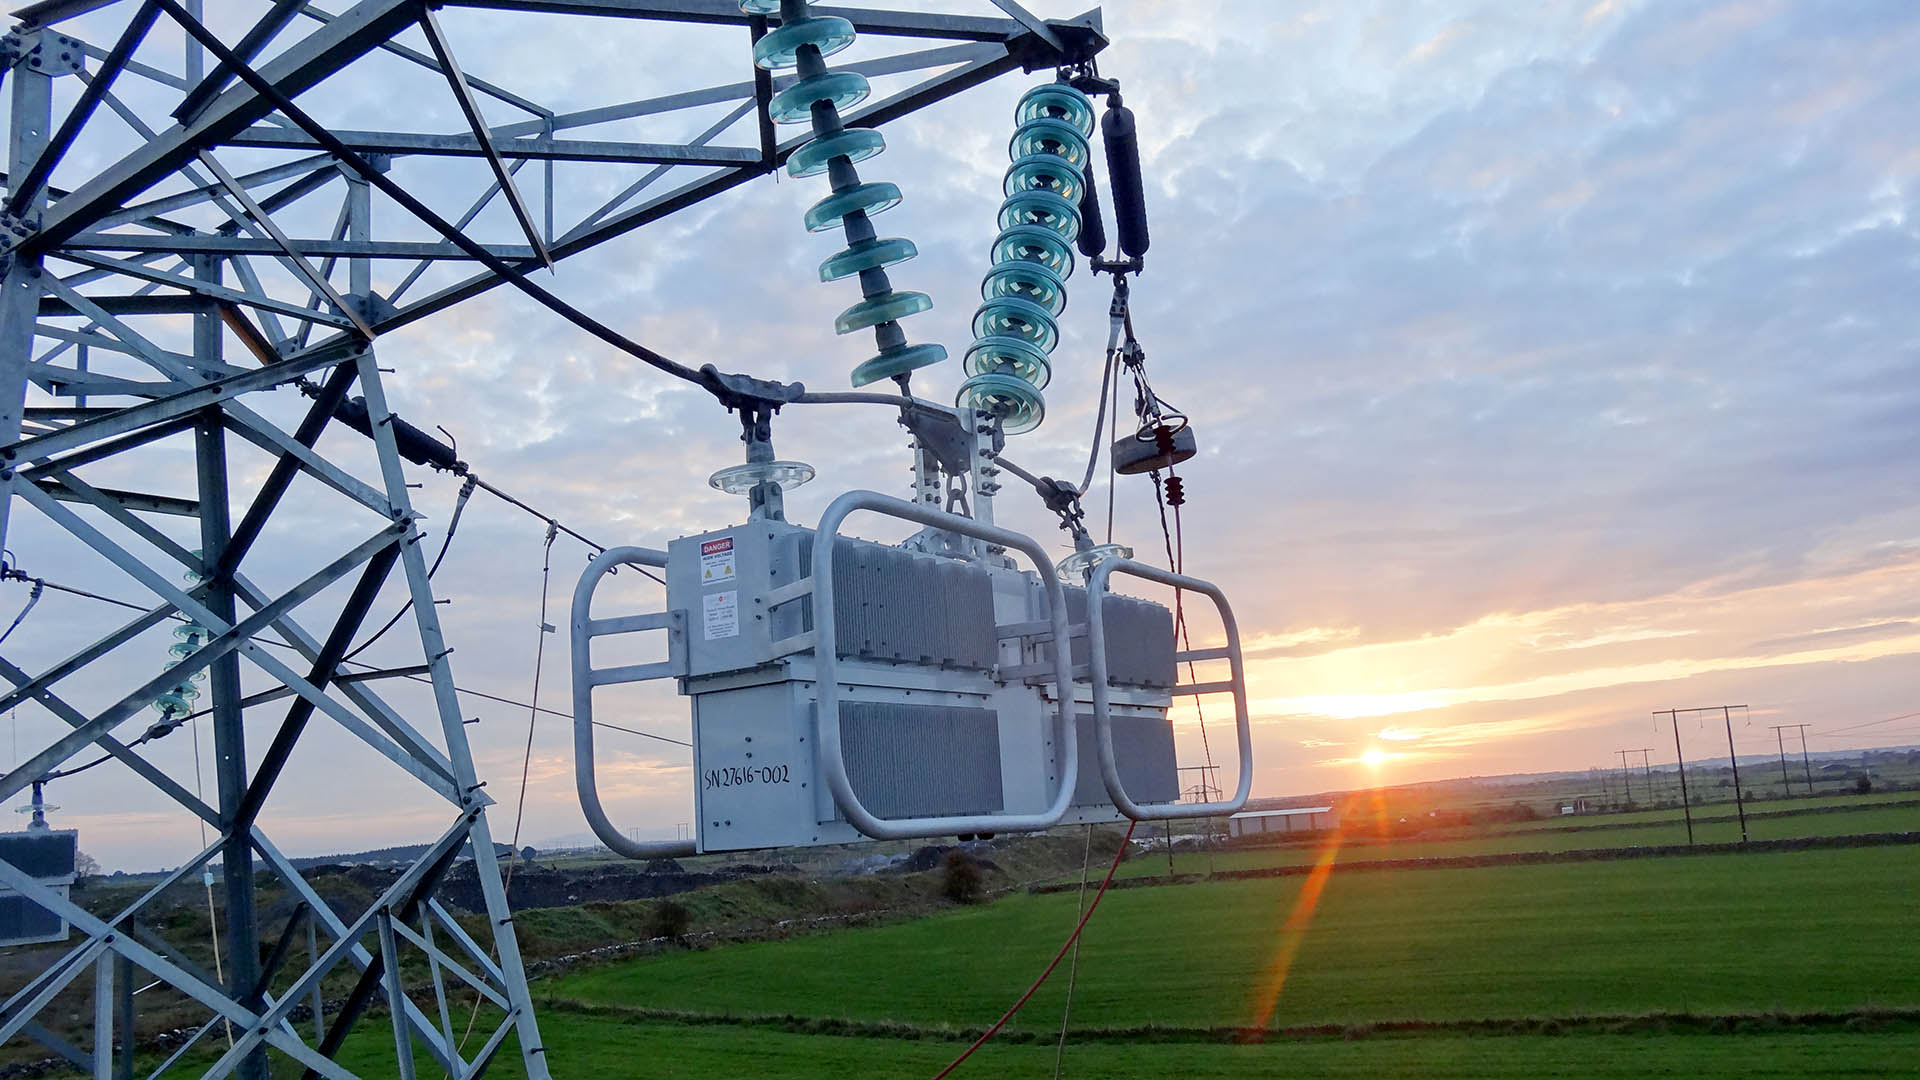 EirGrid Partners with Smart Wires on Groundbreaking Grid Project